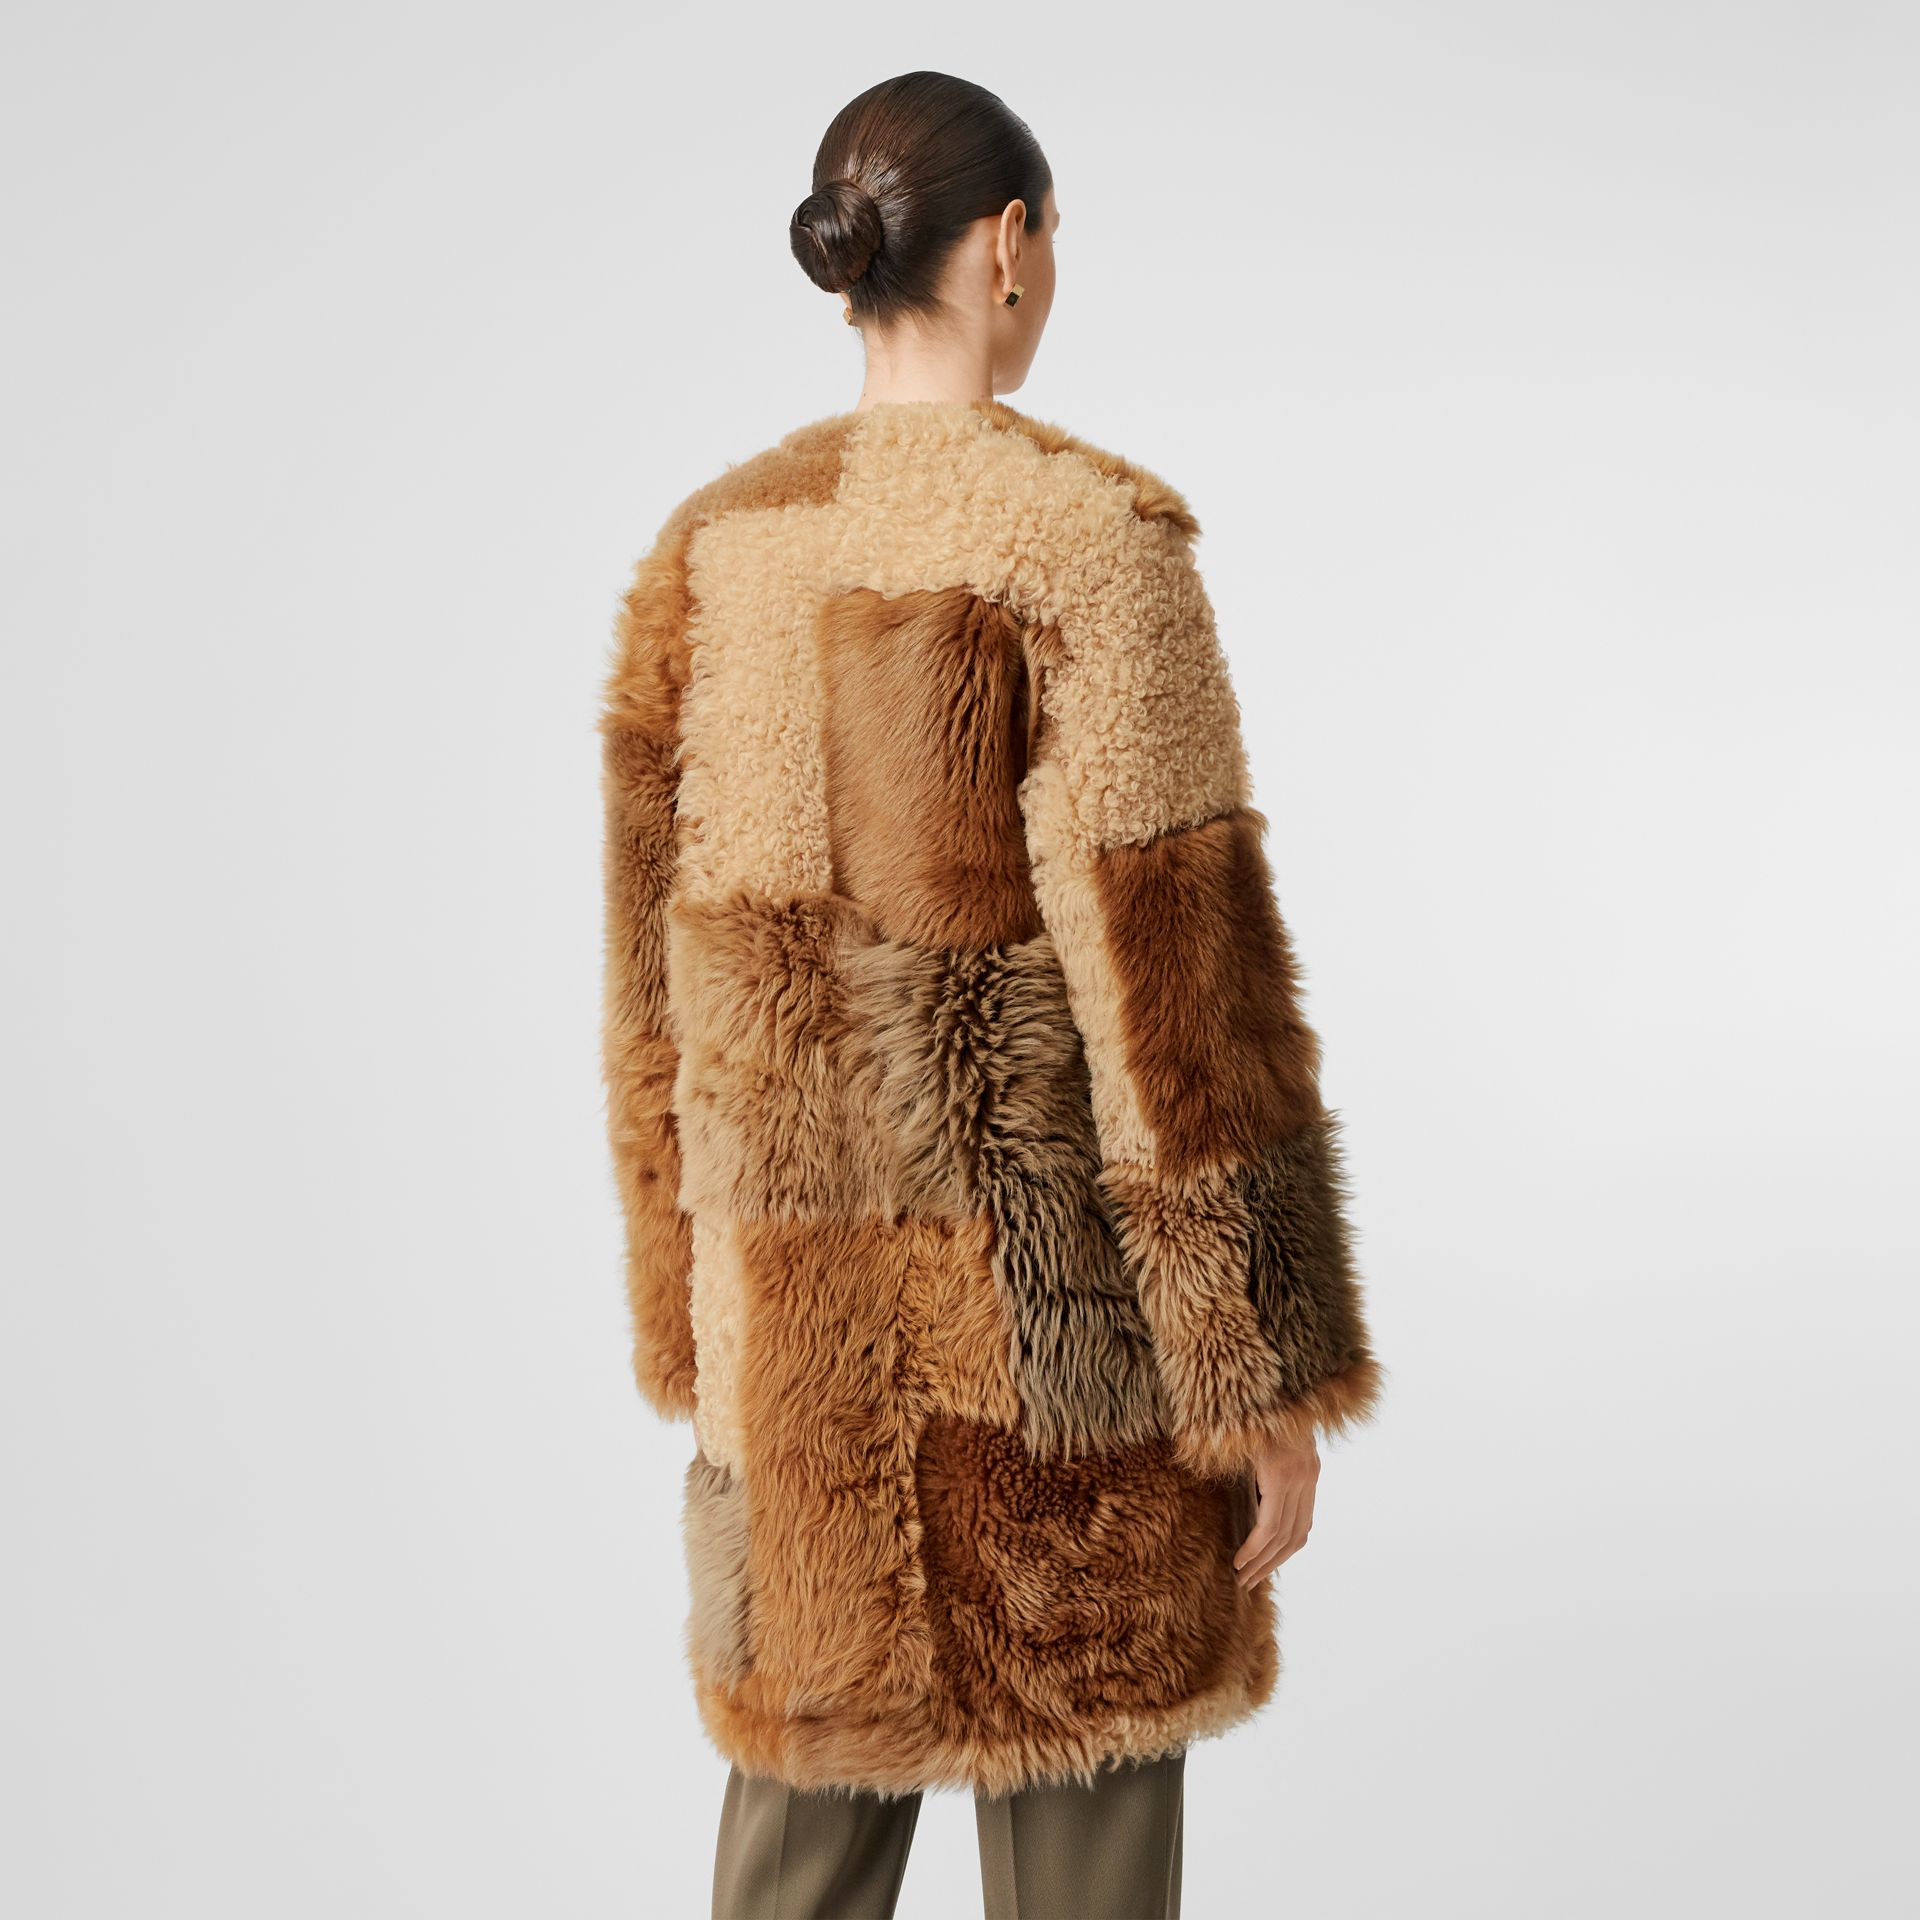 Patchwork Shearling Coat in Toffee - Women | Burberry - gallery image 3